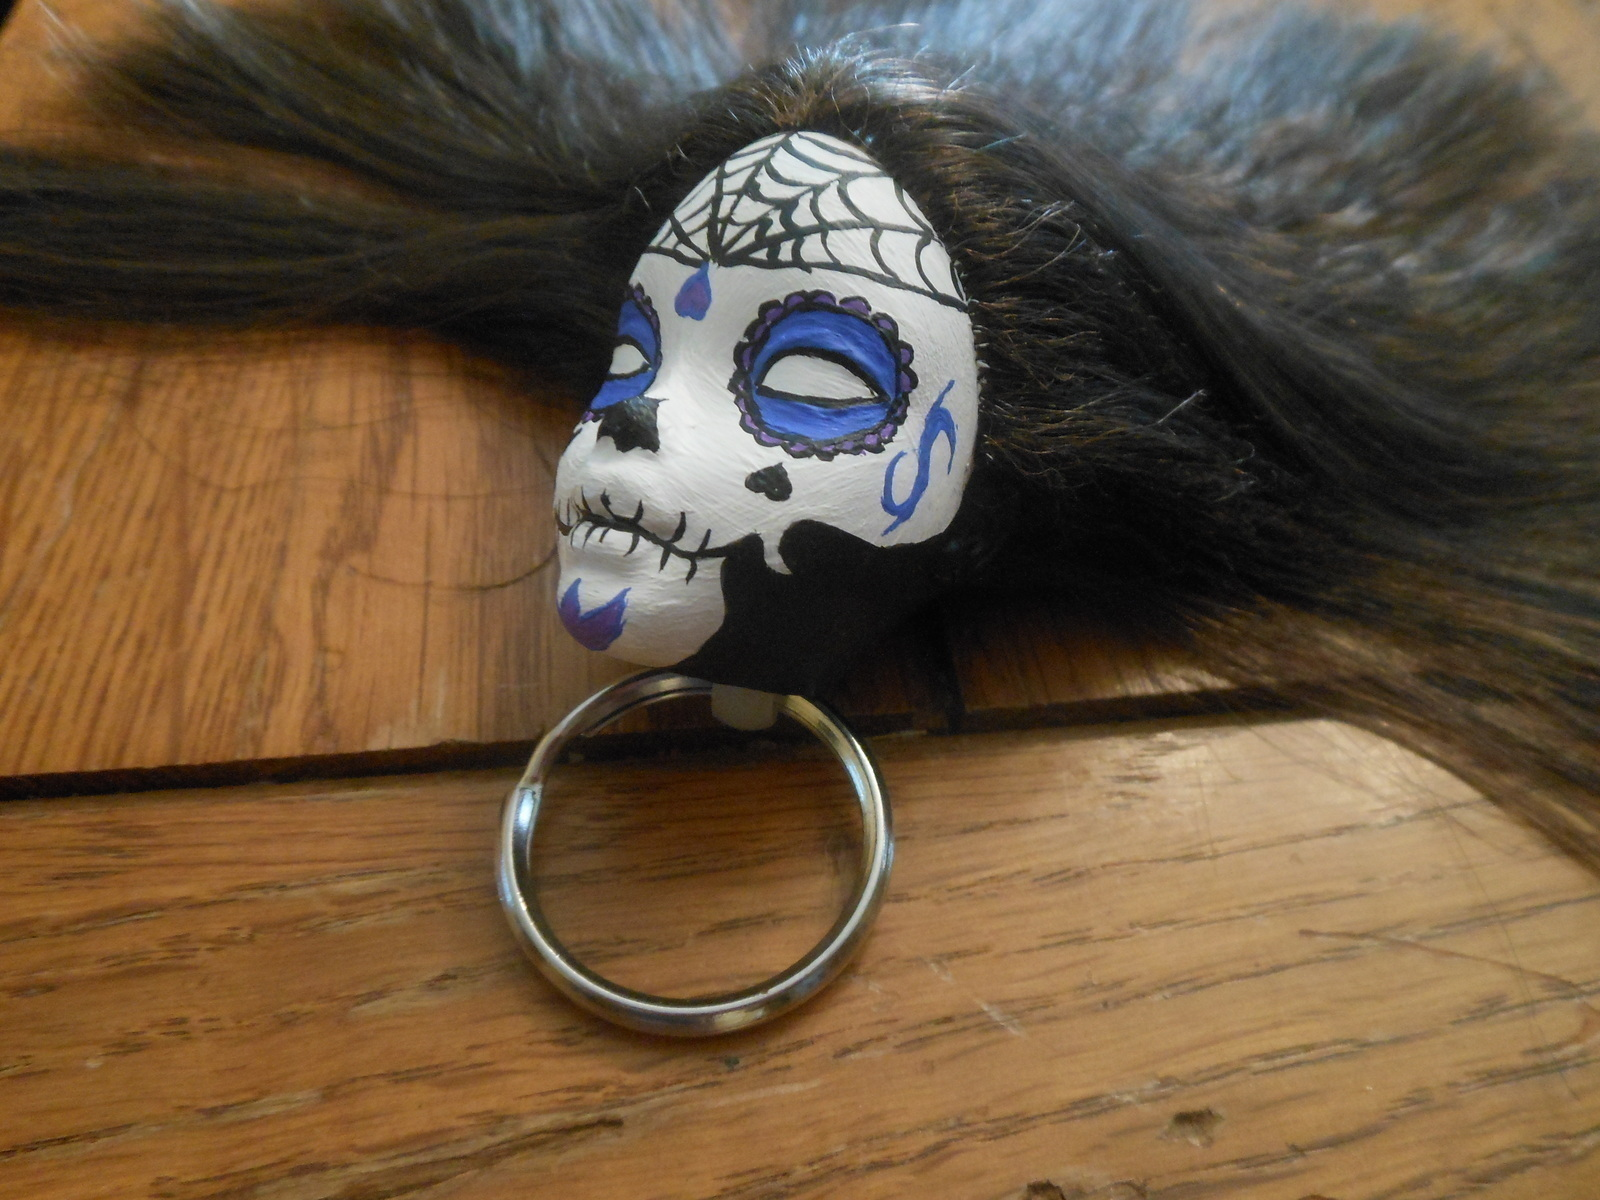 Sugar Skull Barbie Keychain A Toy Charm Art And Decorating On